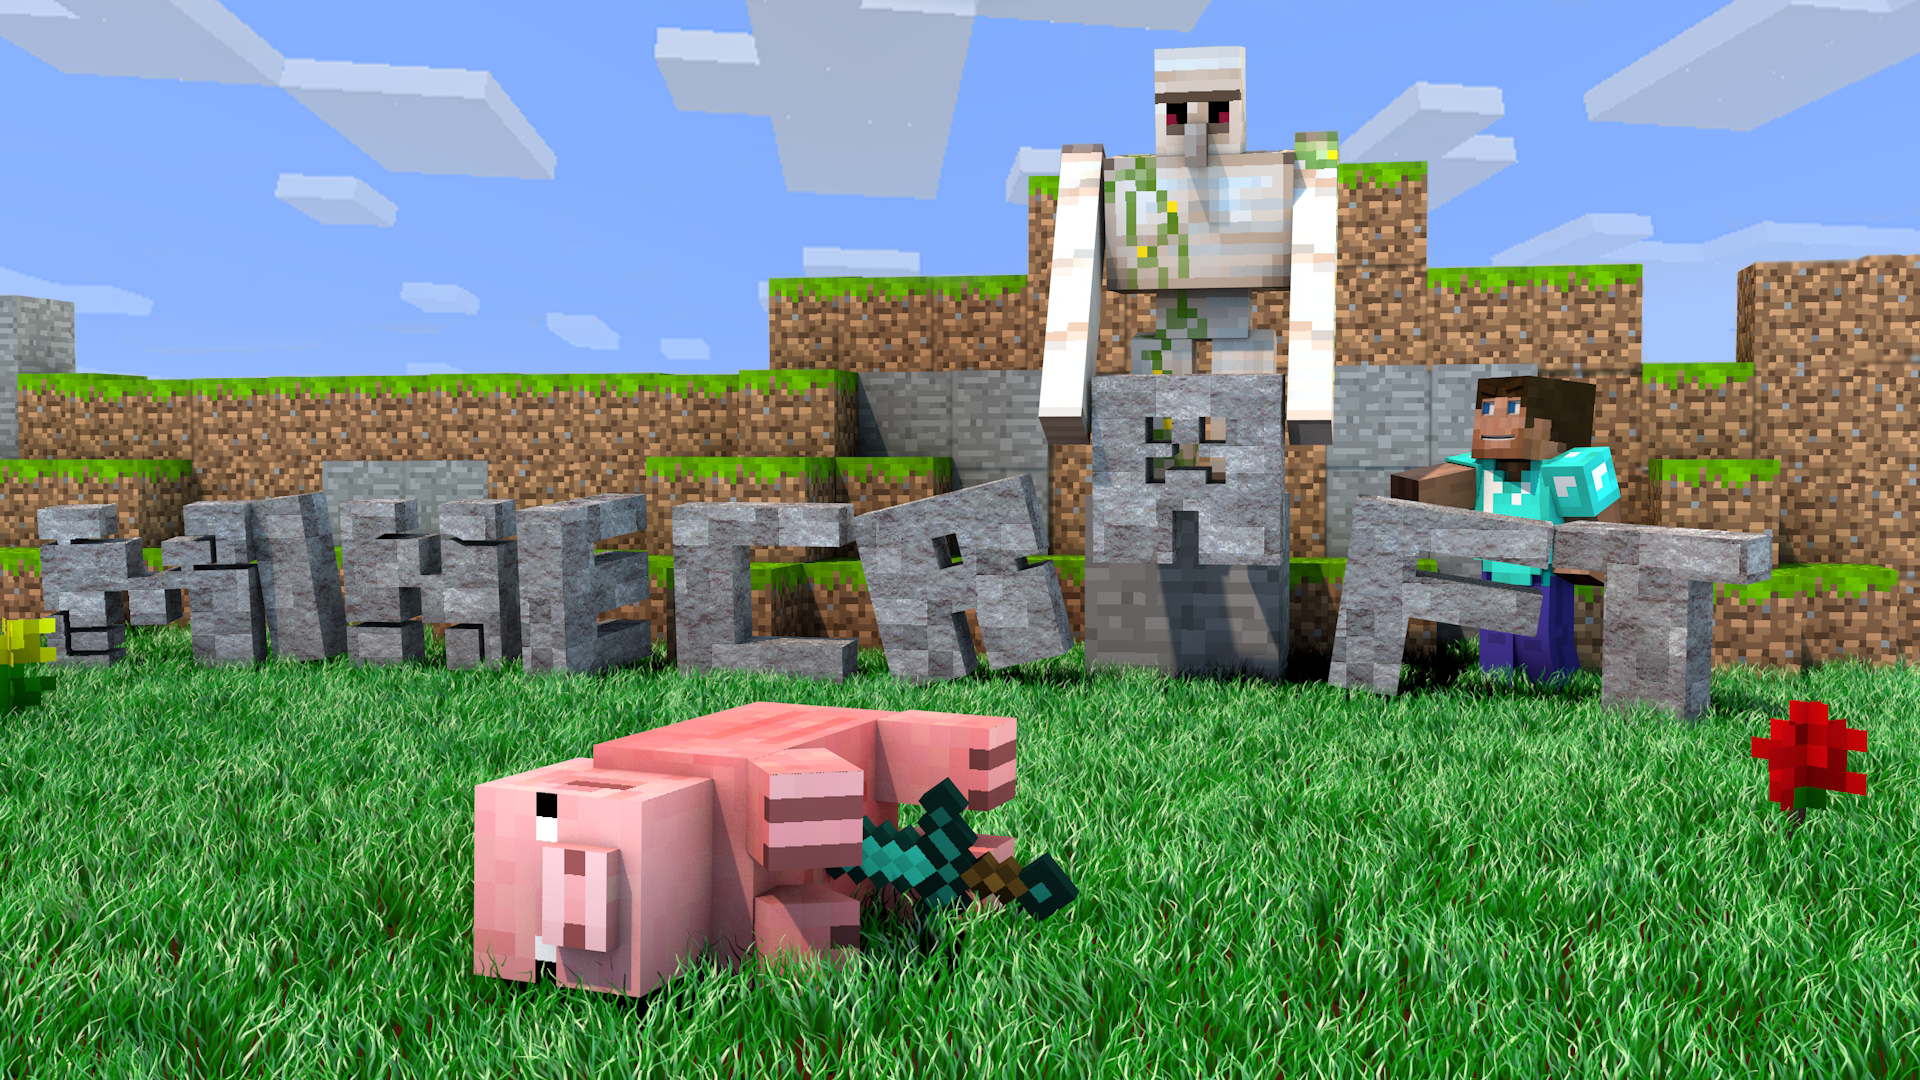 minecraft pig wallpapers download - photo #4